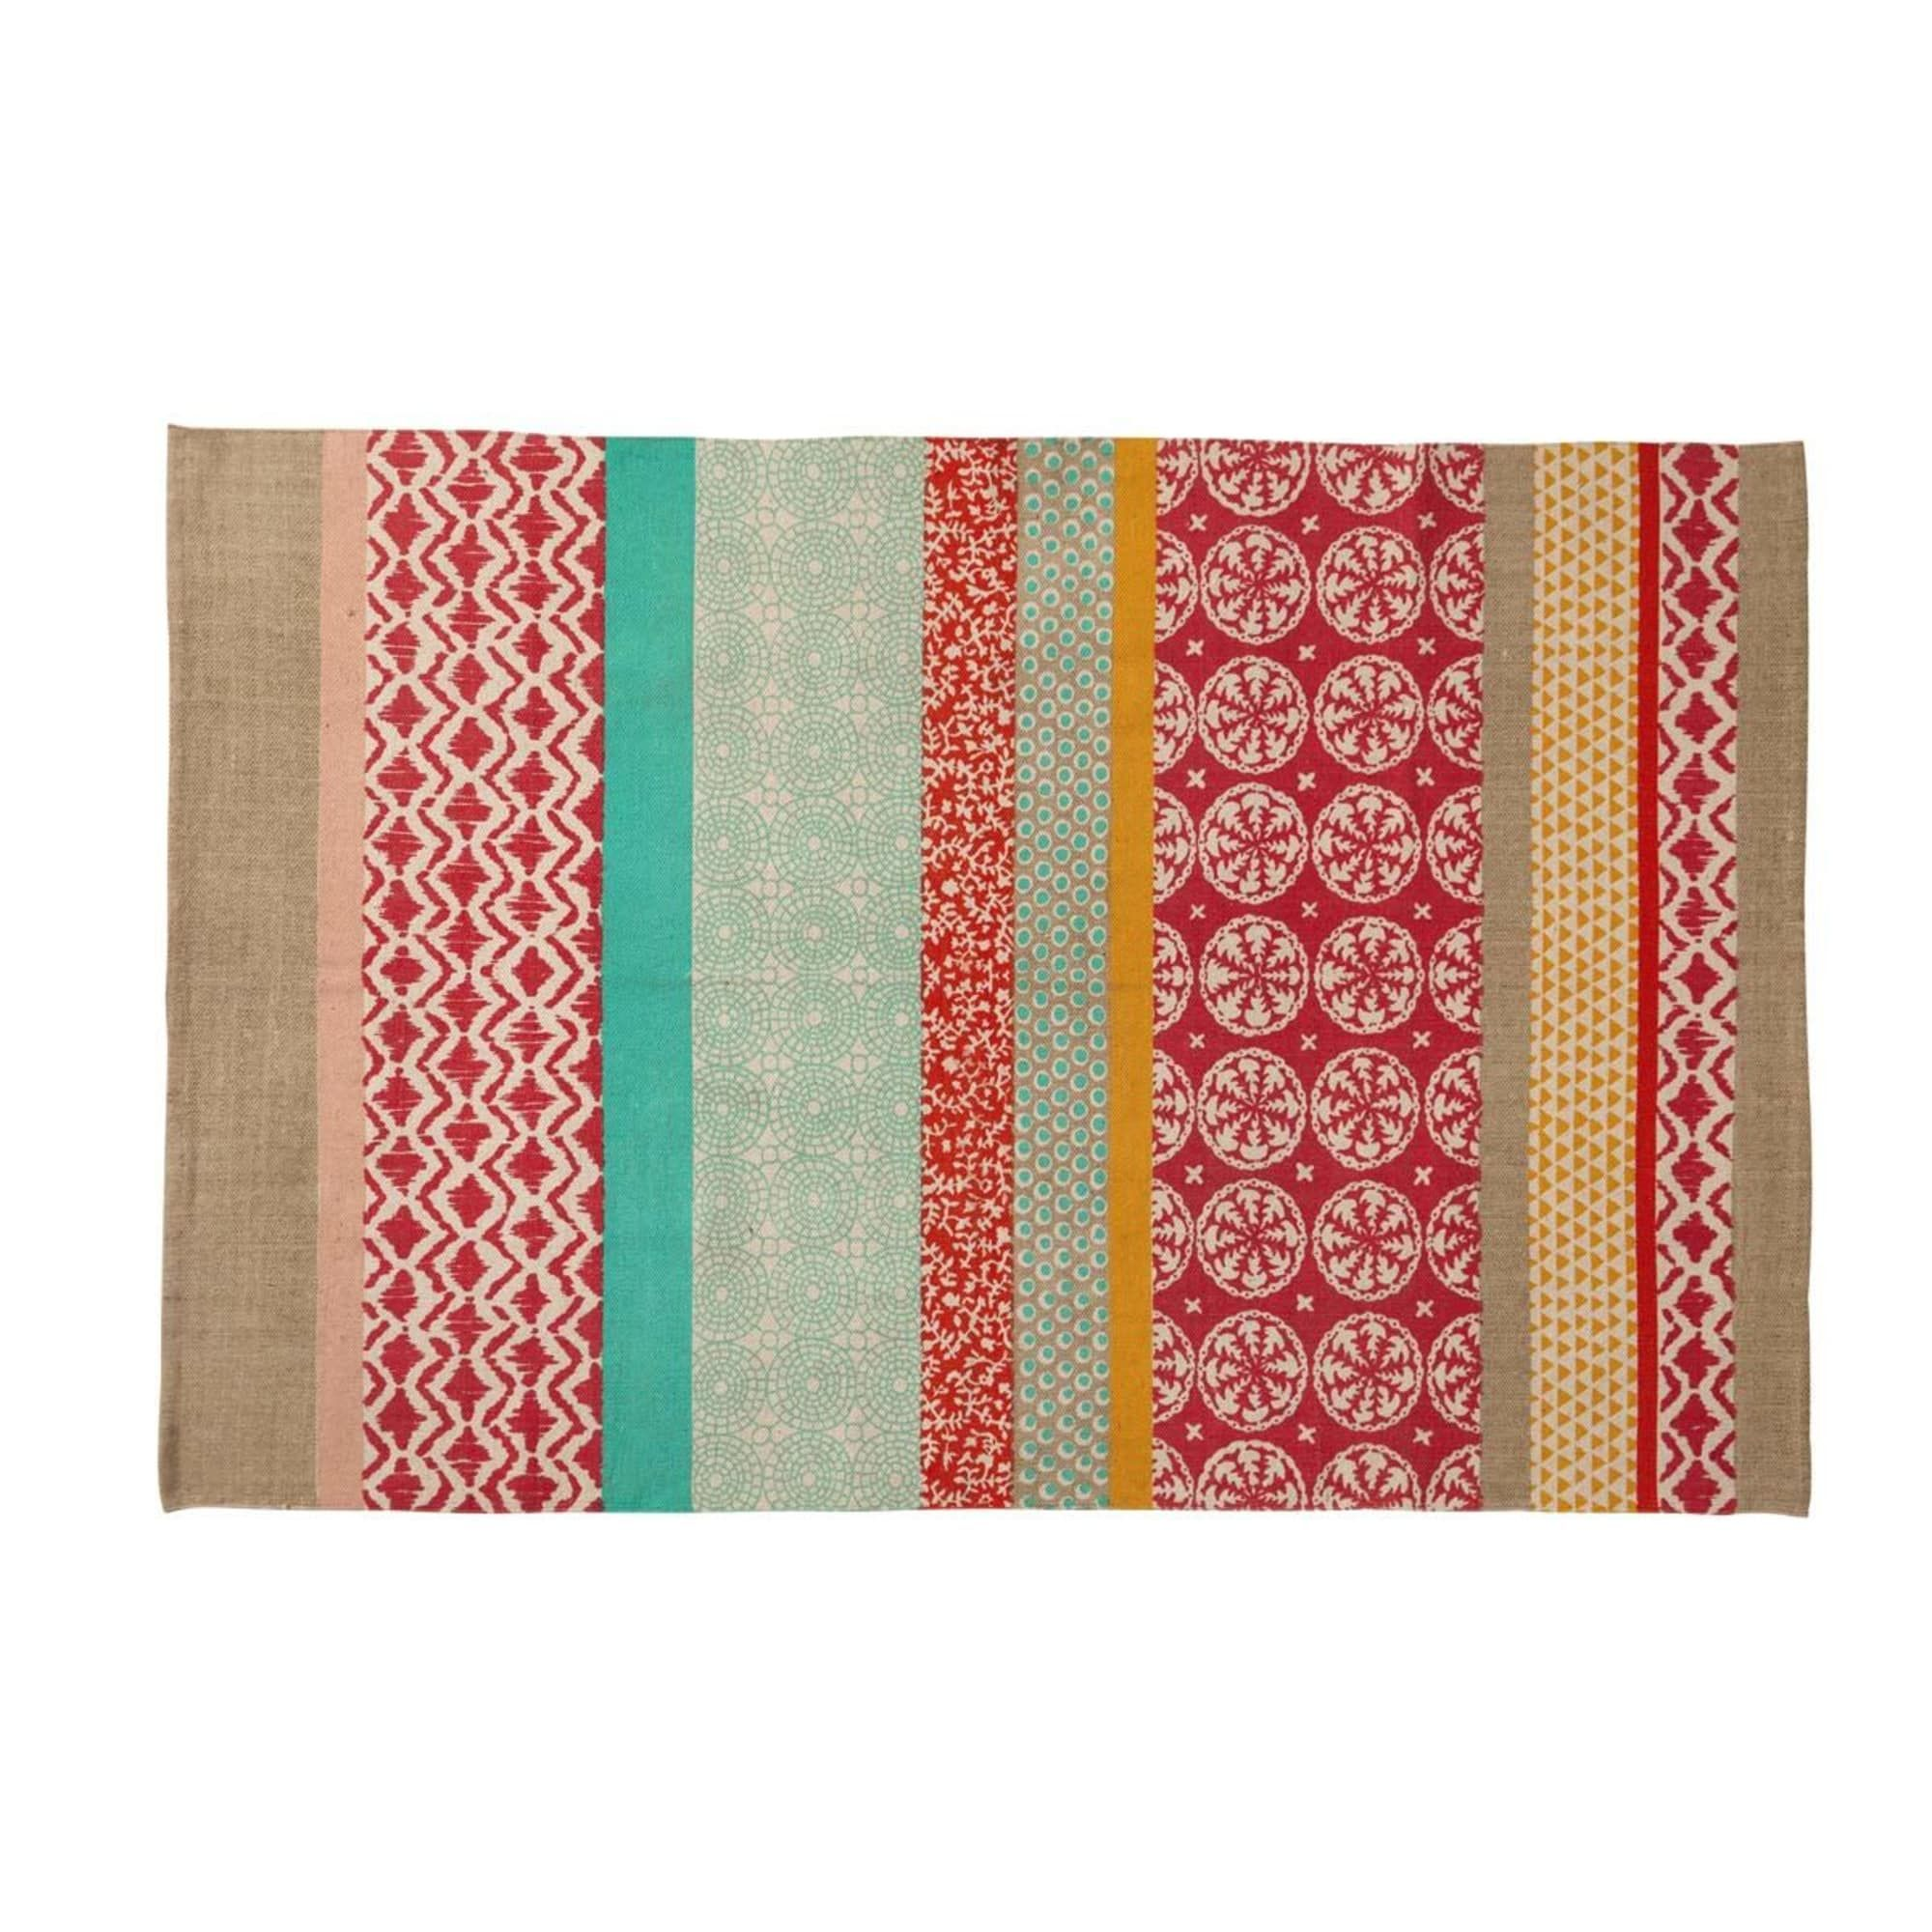 Cotton Rug with Multicoloured Patterns 120x180 Maisons